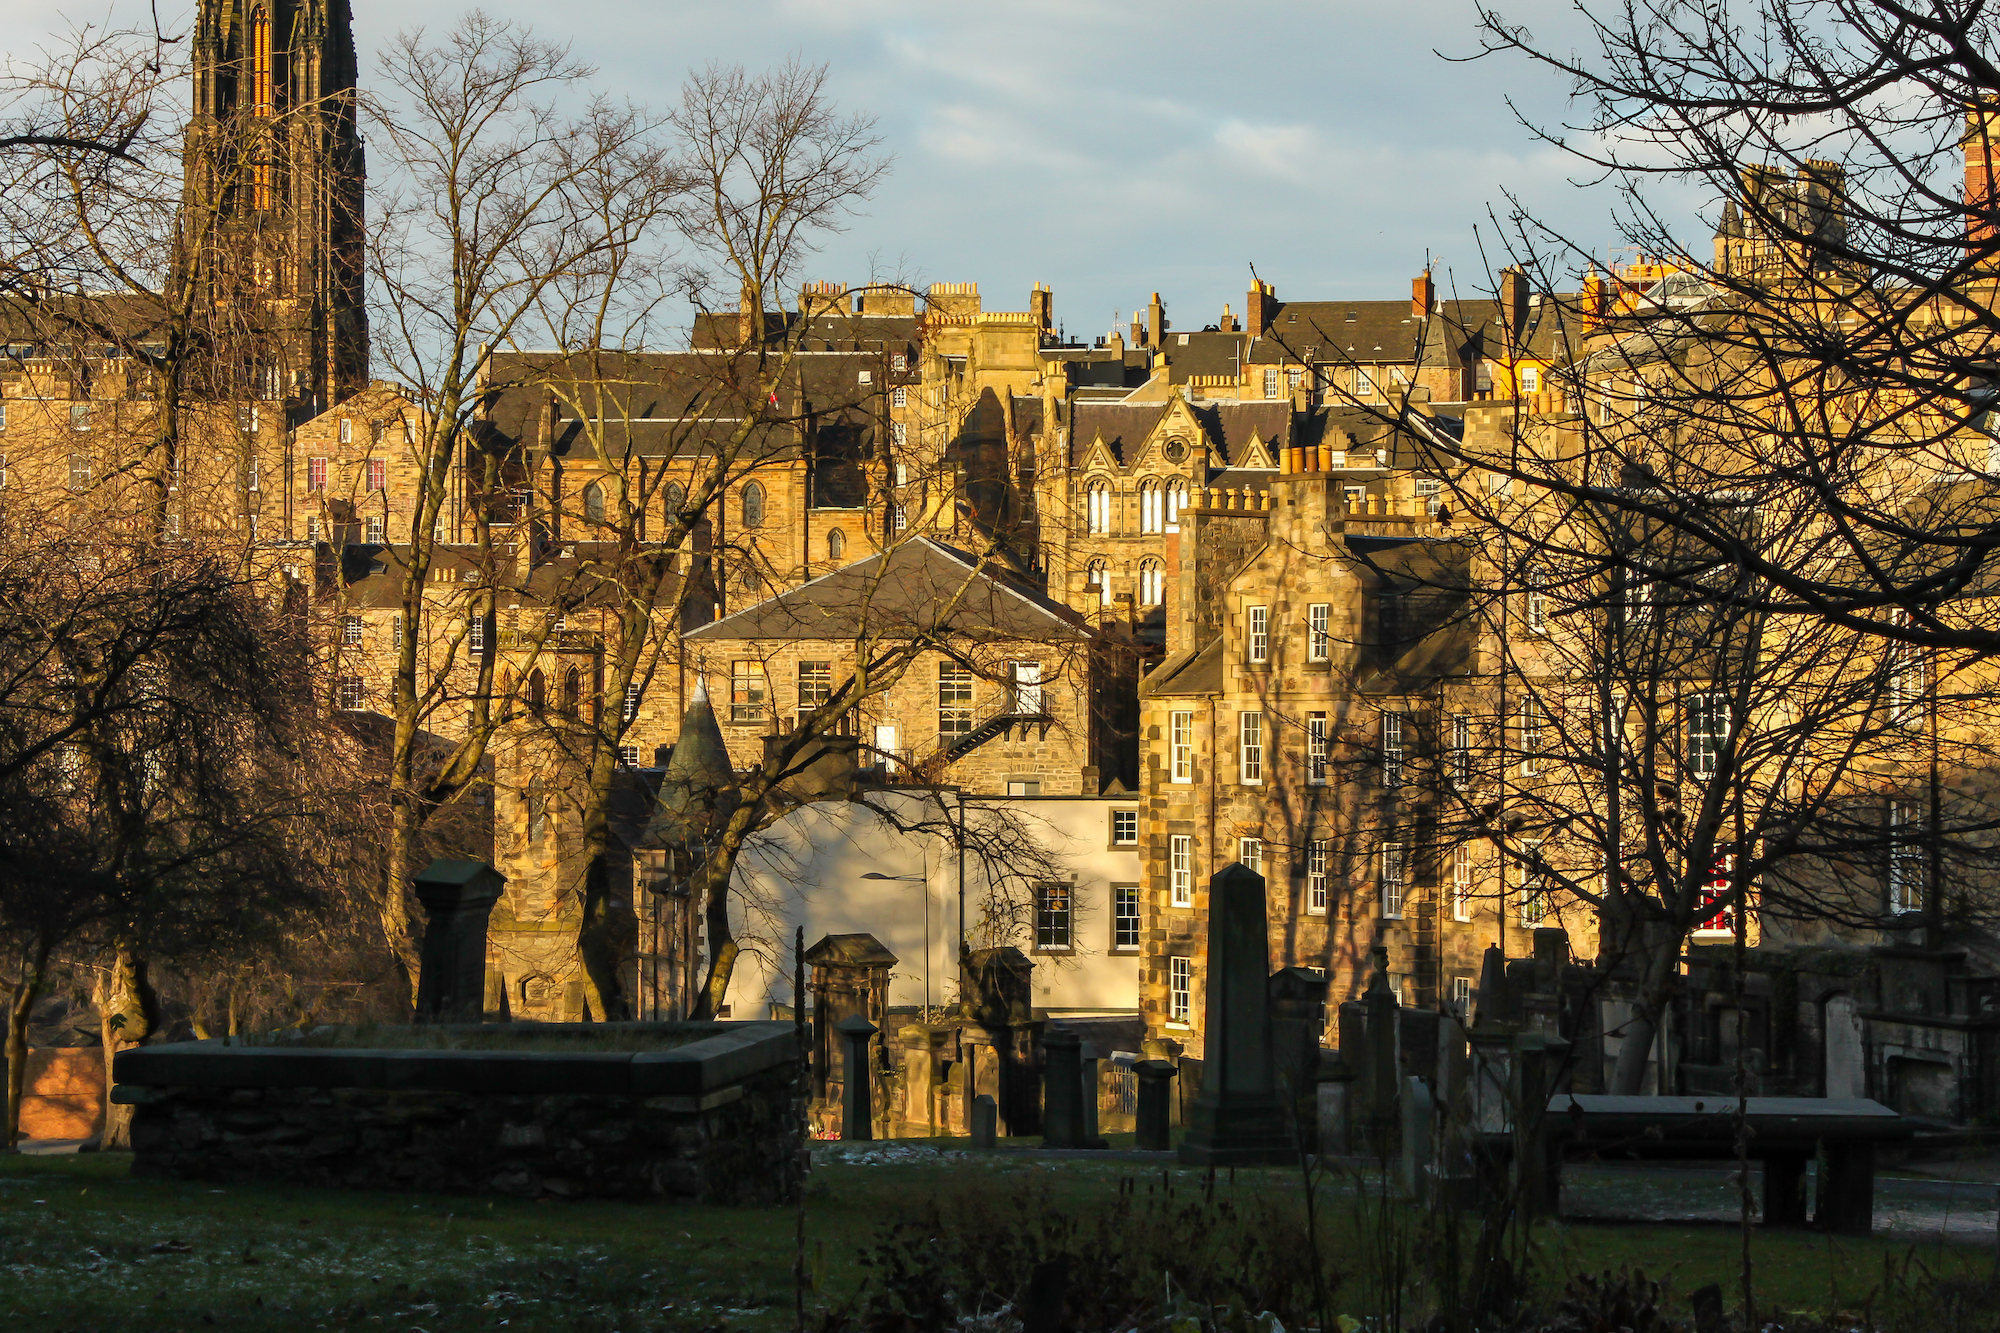 (115) (PO) View from Greyfriars Kirkyard to buildings in The Cowgate, Victoria Street and steeple of The Hub (originally the Victoria Hall) on Castlehill, Edinburgh, Scotland.jpg